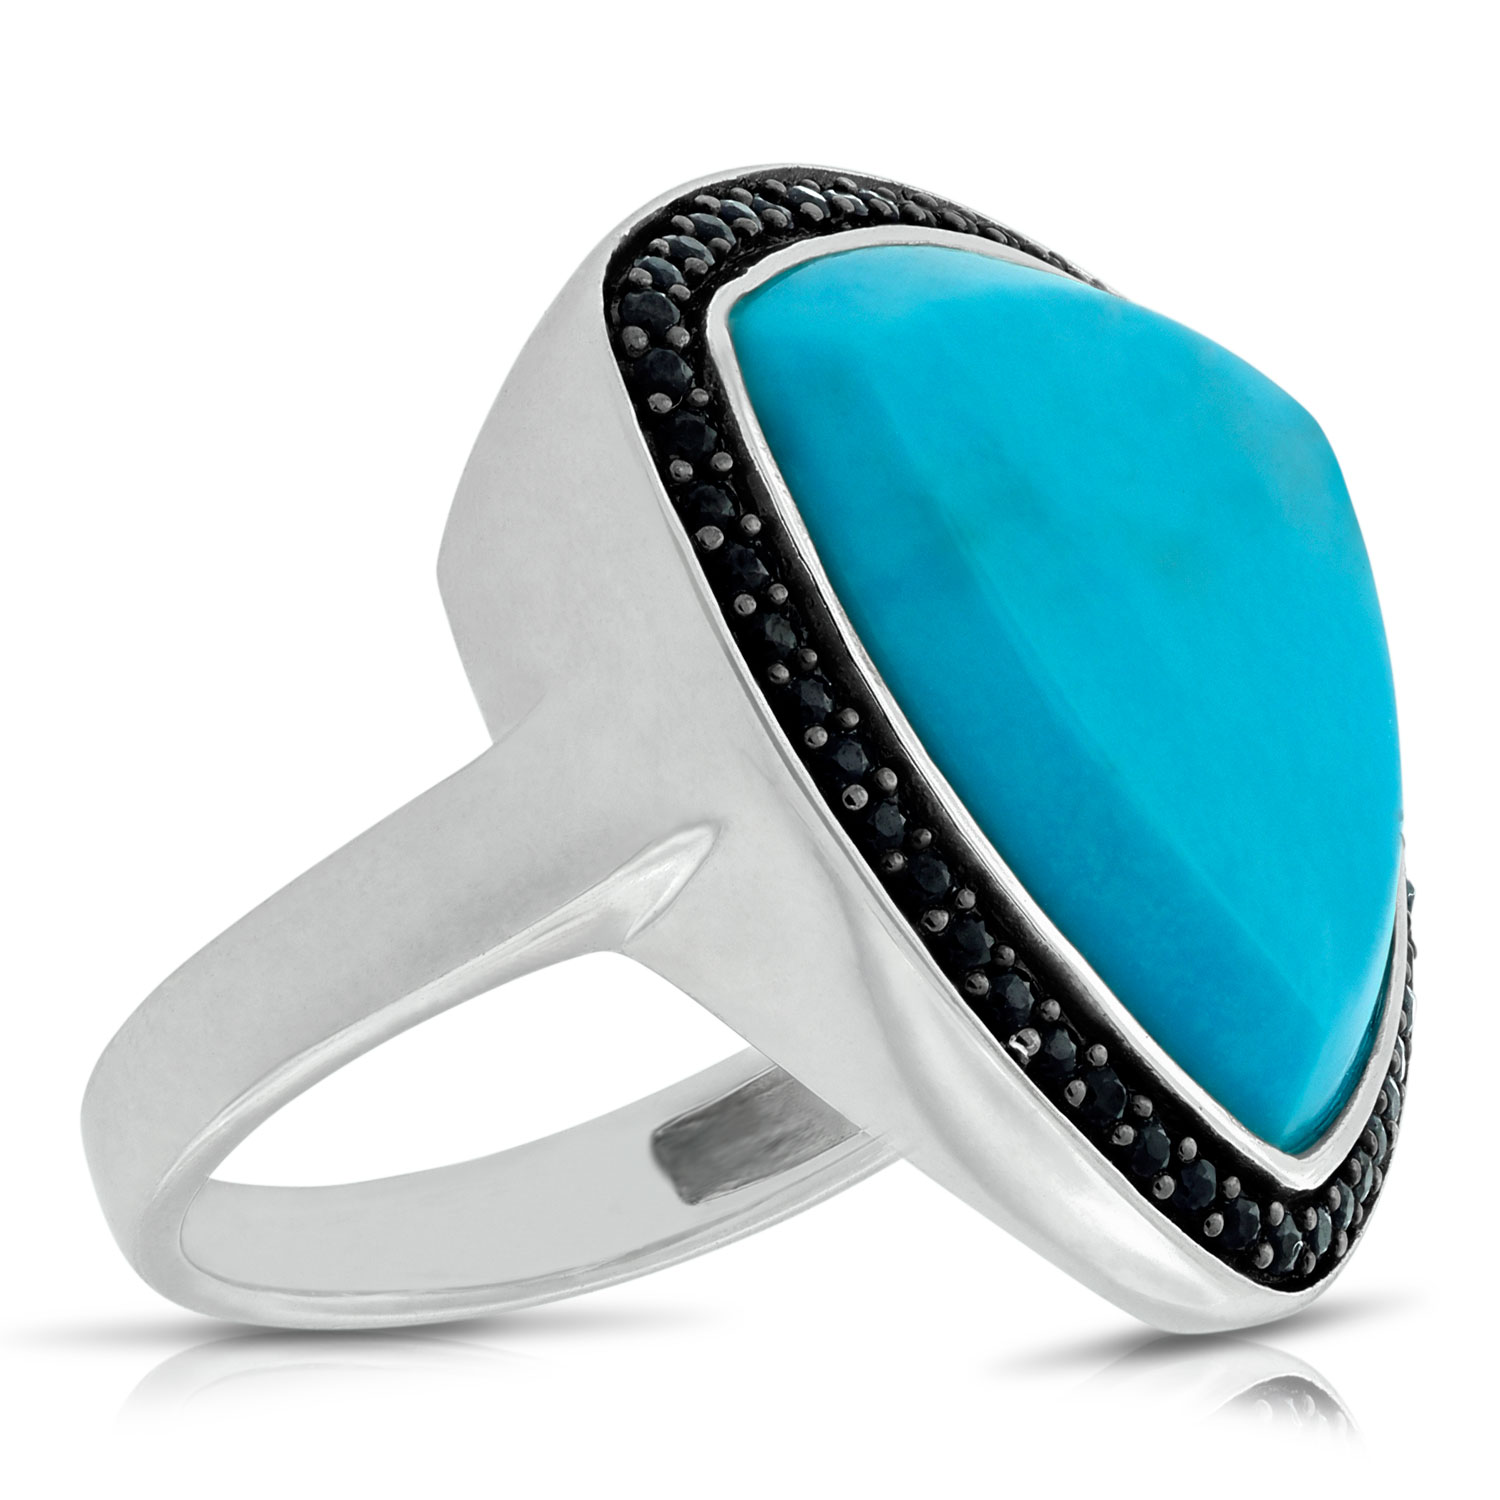 Using Rings such as Gemstone Rings is great for your Adornment